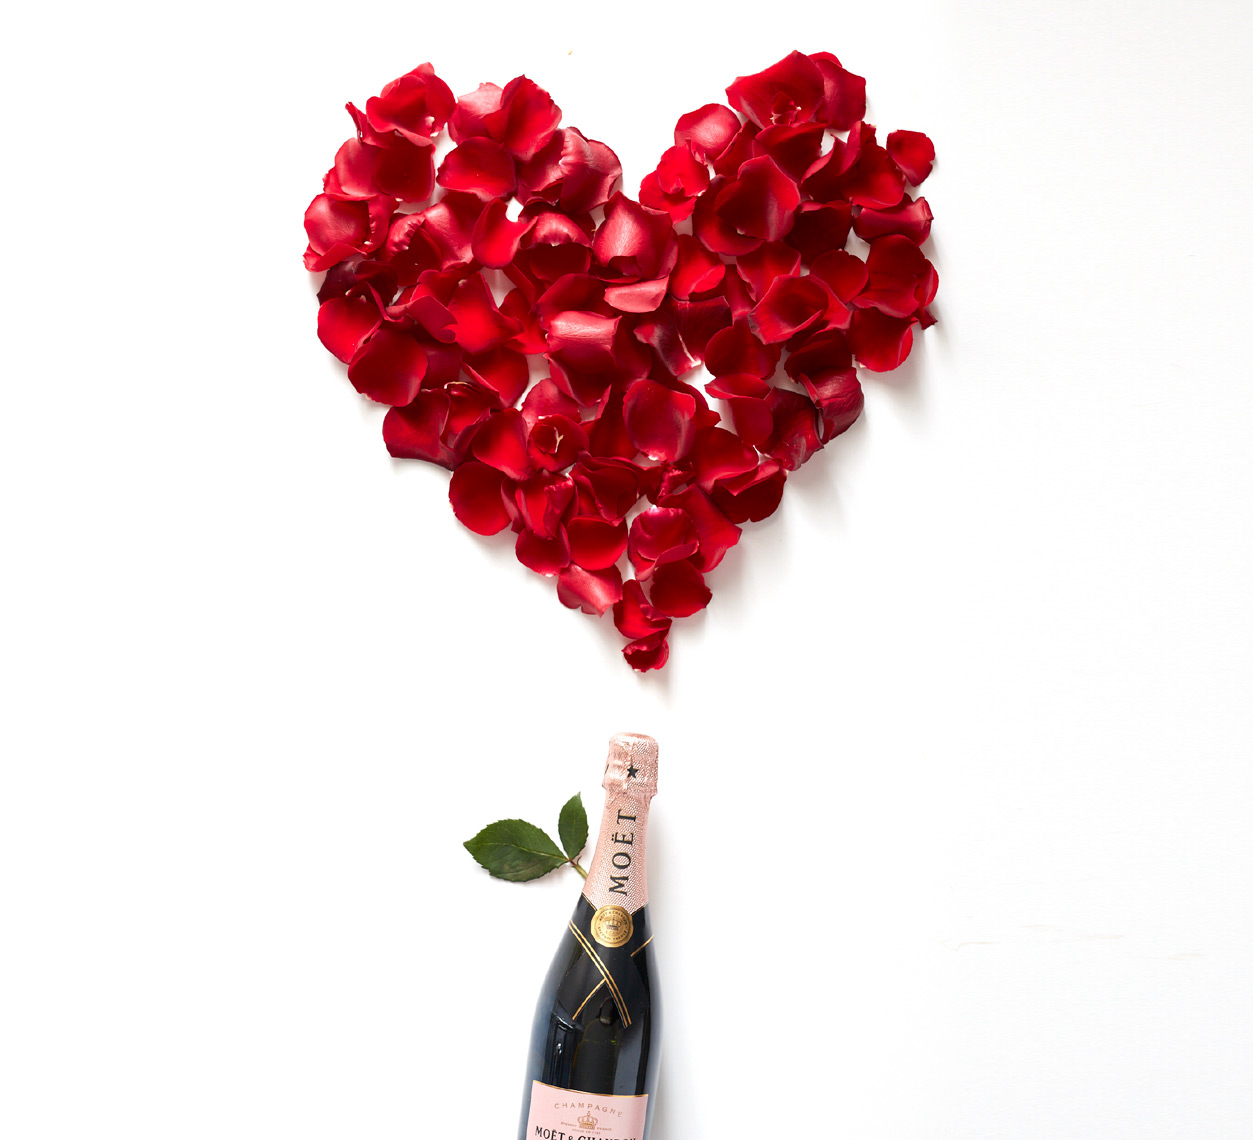 bottle of champagne with rose petals in a heart shape San Francisco food photographer